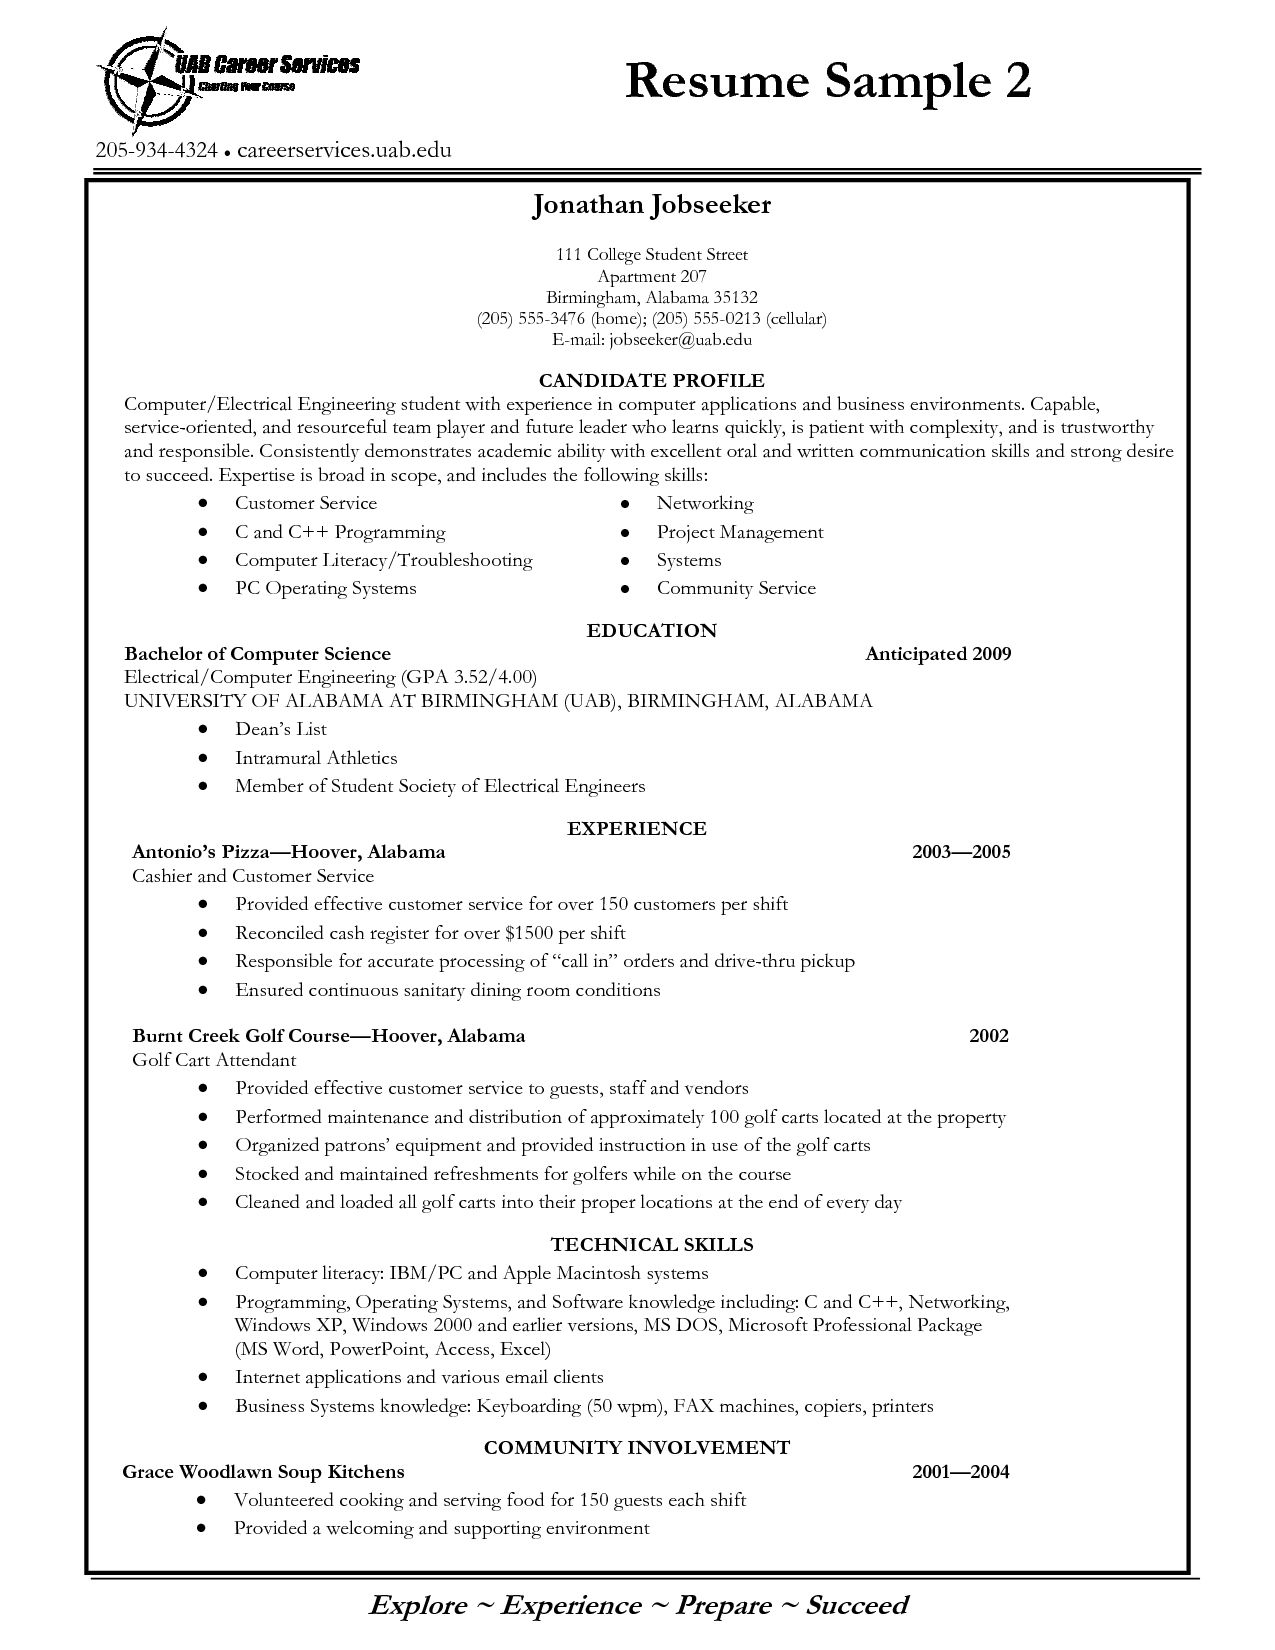 Free Resume Templates For University Students College